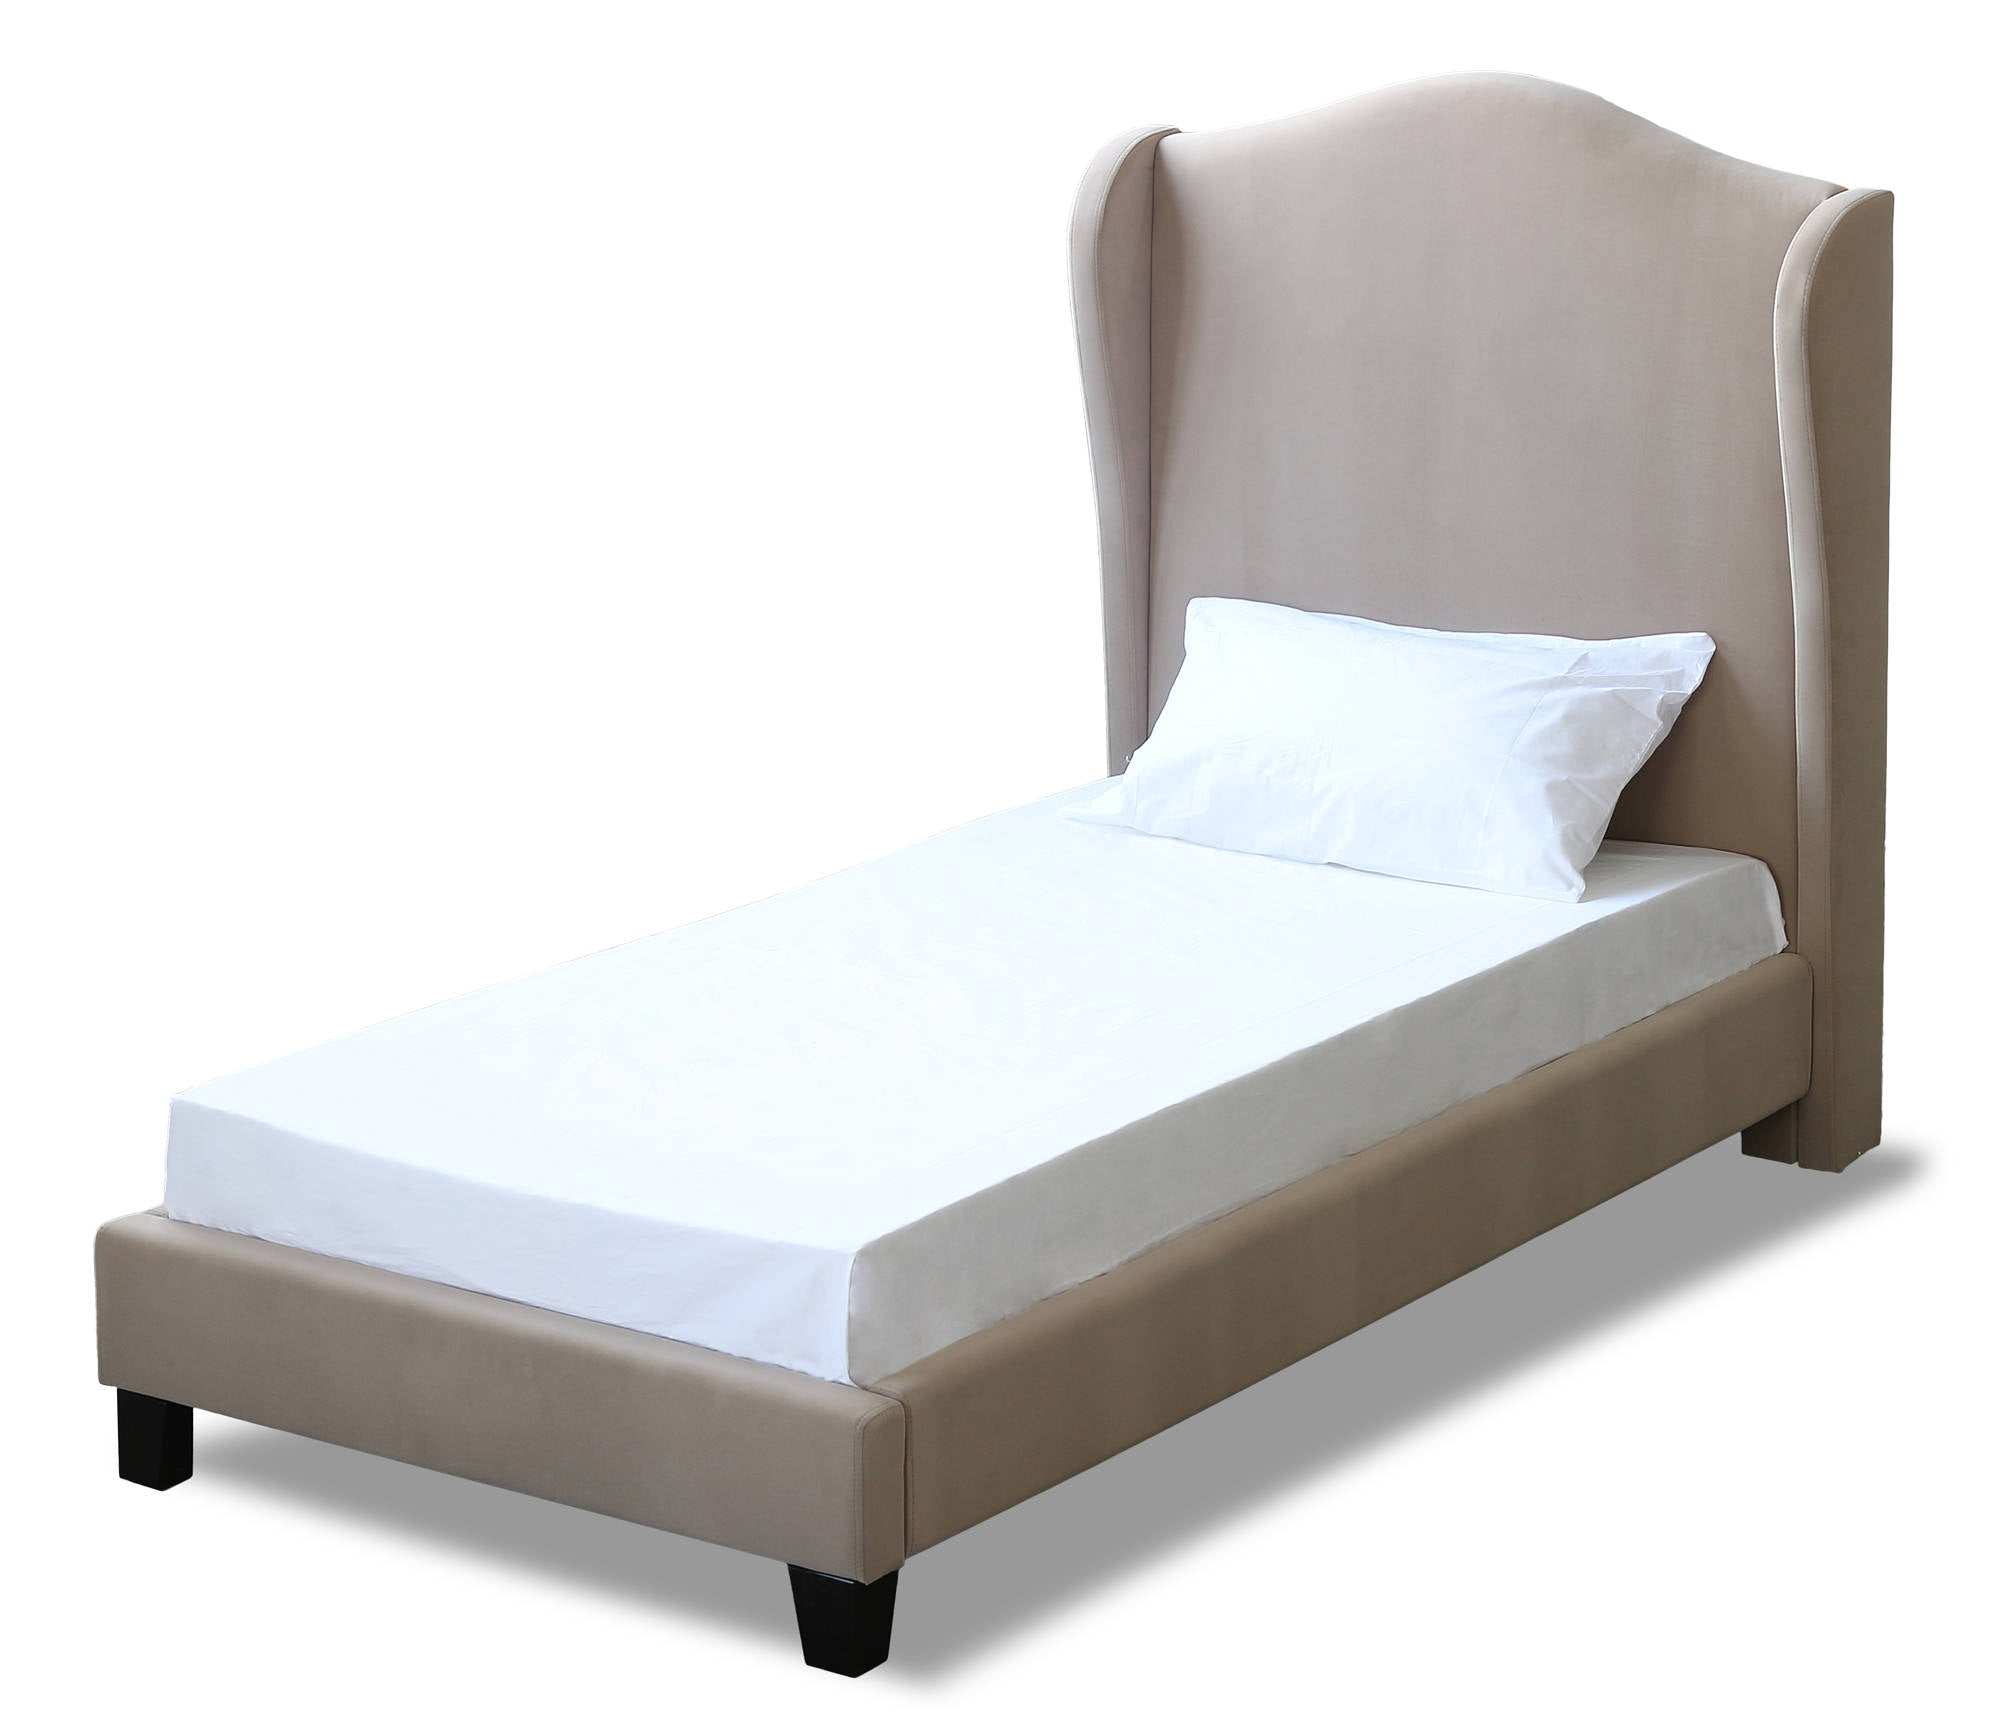 Cheverny Single Bed in Beige - Ezzo